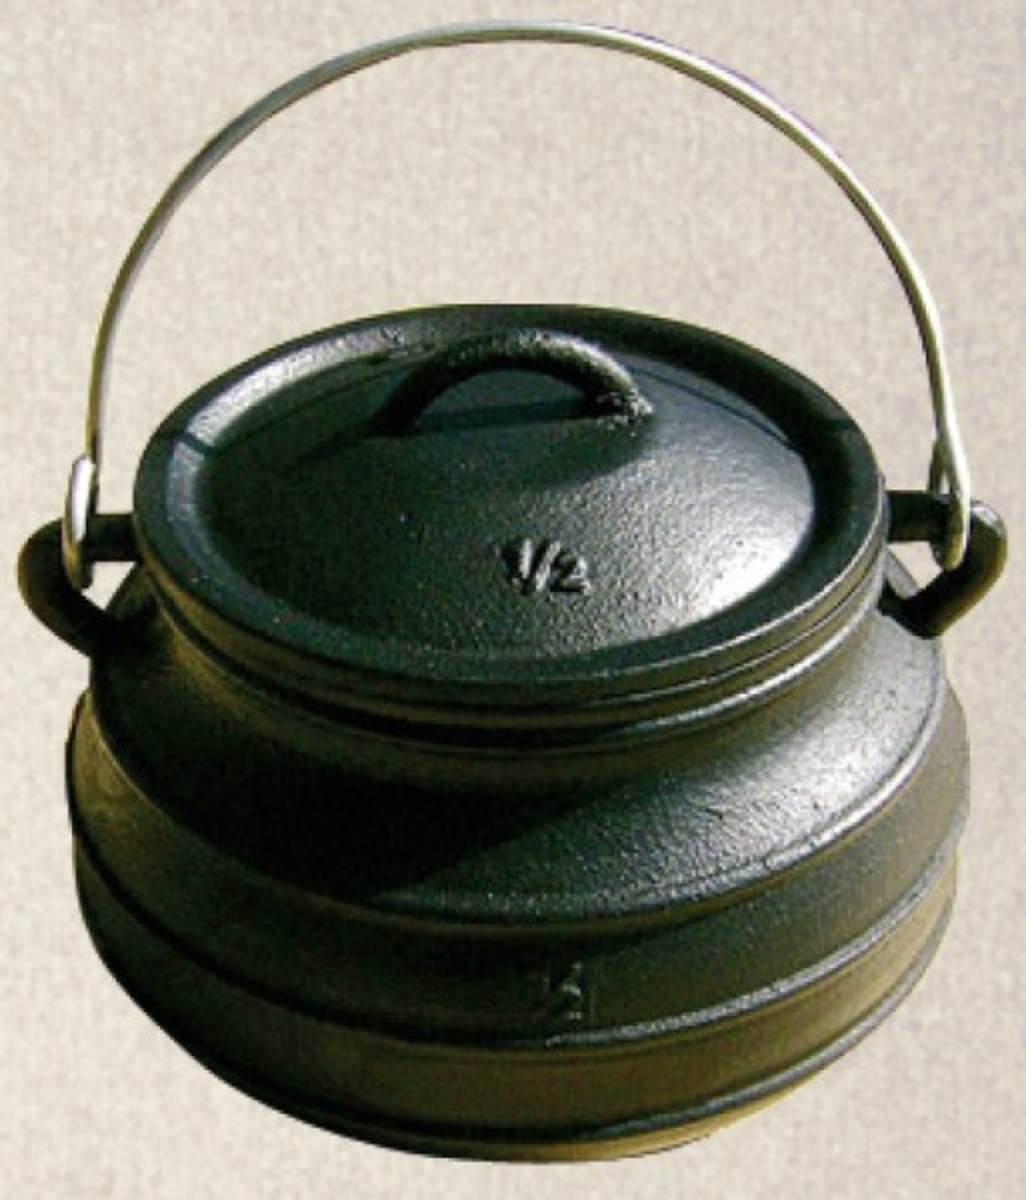 Cast Iron flat bottom pots for outdoor cooking